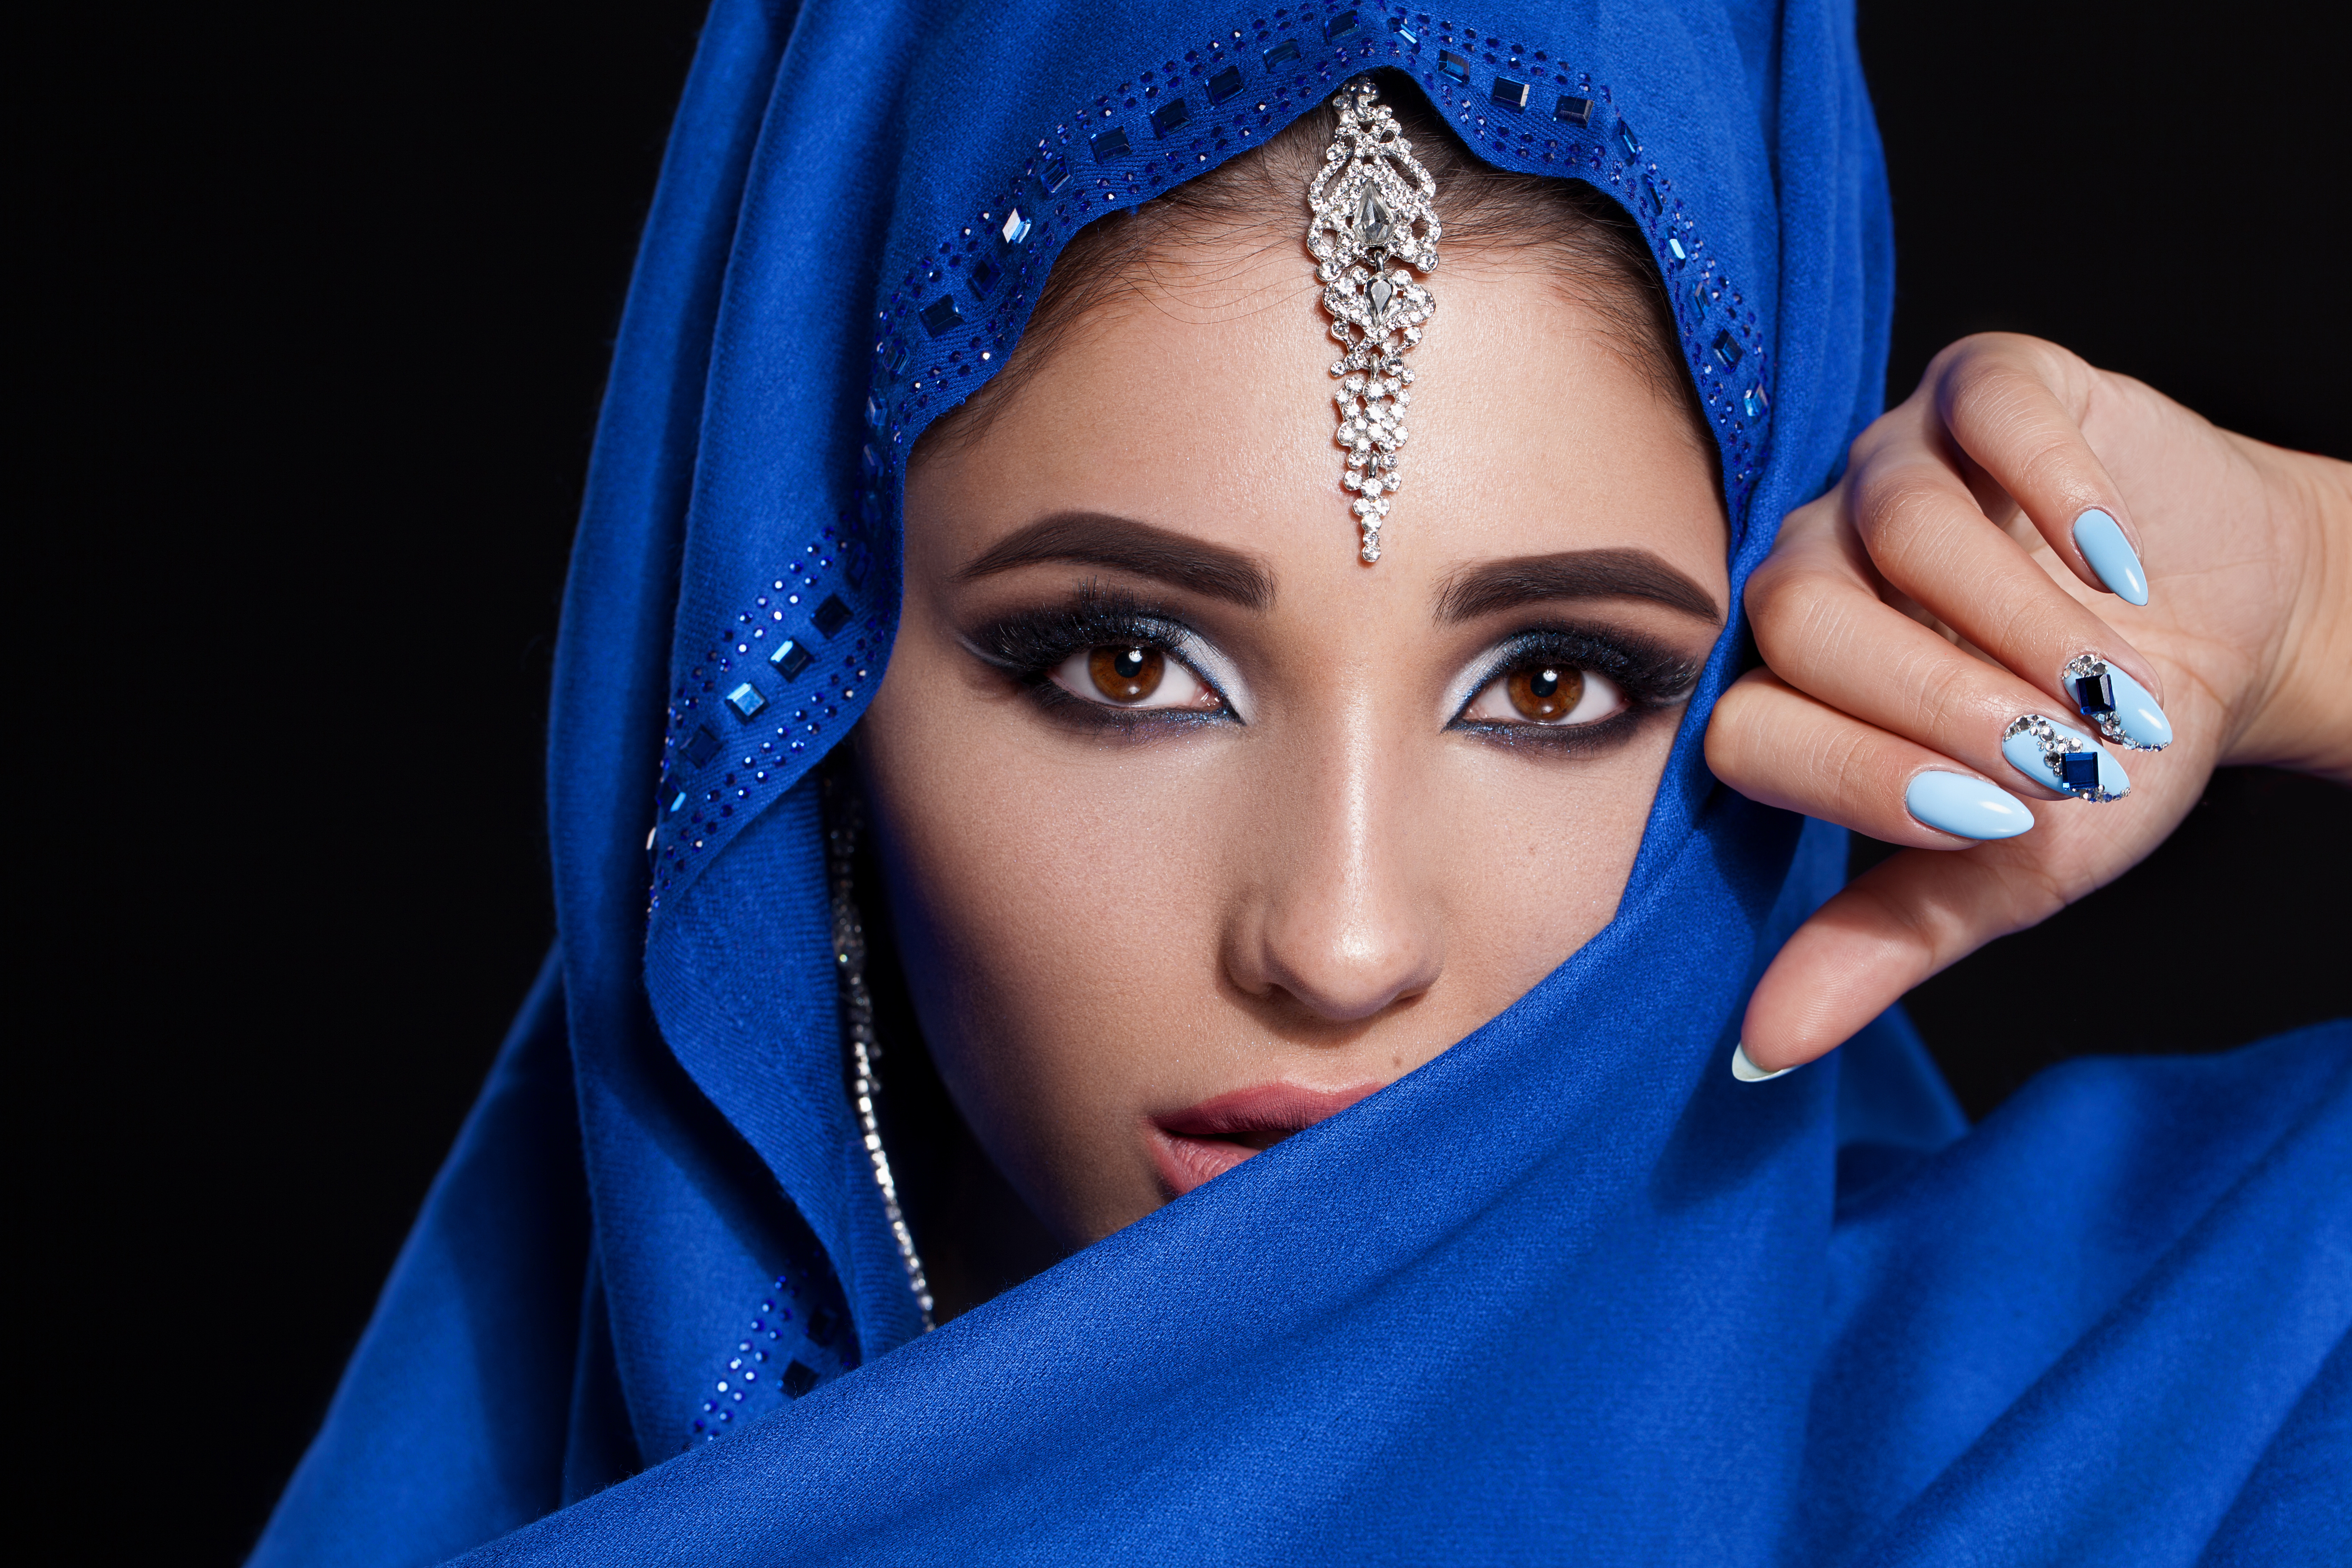 Gorgeous Young East Woman face portrait in hijab. Beauty Model Girl with bright eyebrows, perfect make-up, touching her face. Traditional. Isolated on black background. Smokey eyes. Jewelry on her face